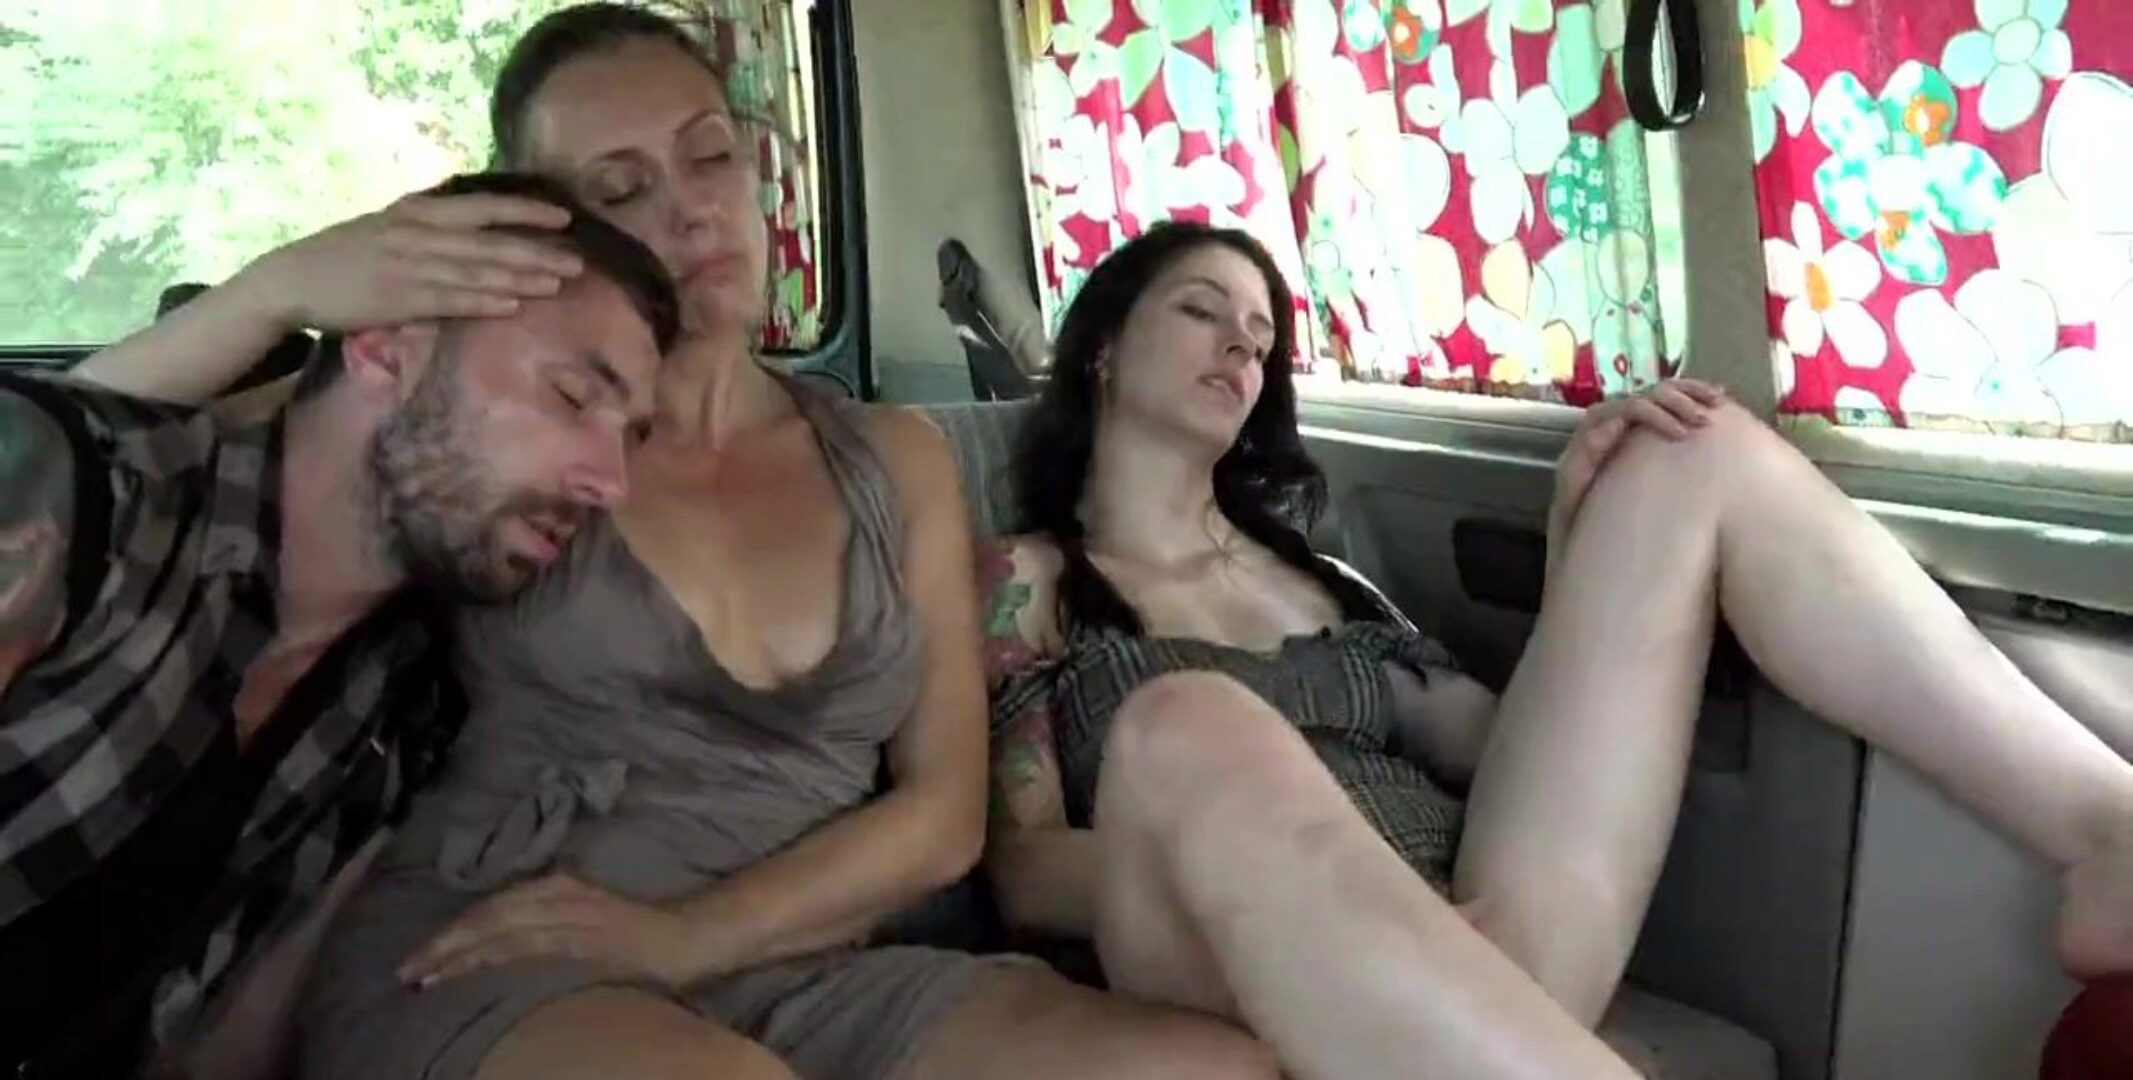 Perverse Family, Russian Hitchhikers Our family went on a trip Along the way we picked up 2 gorgeous Russian hitchhikers into the immoral family camper An incredibly amoral family road clip